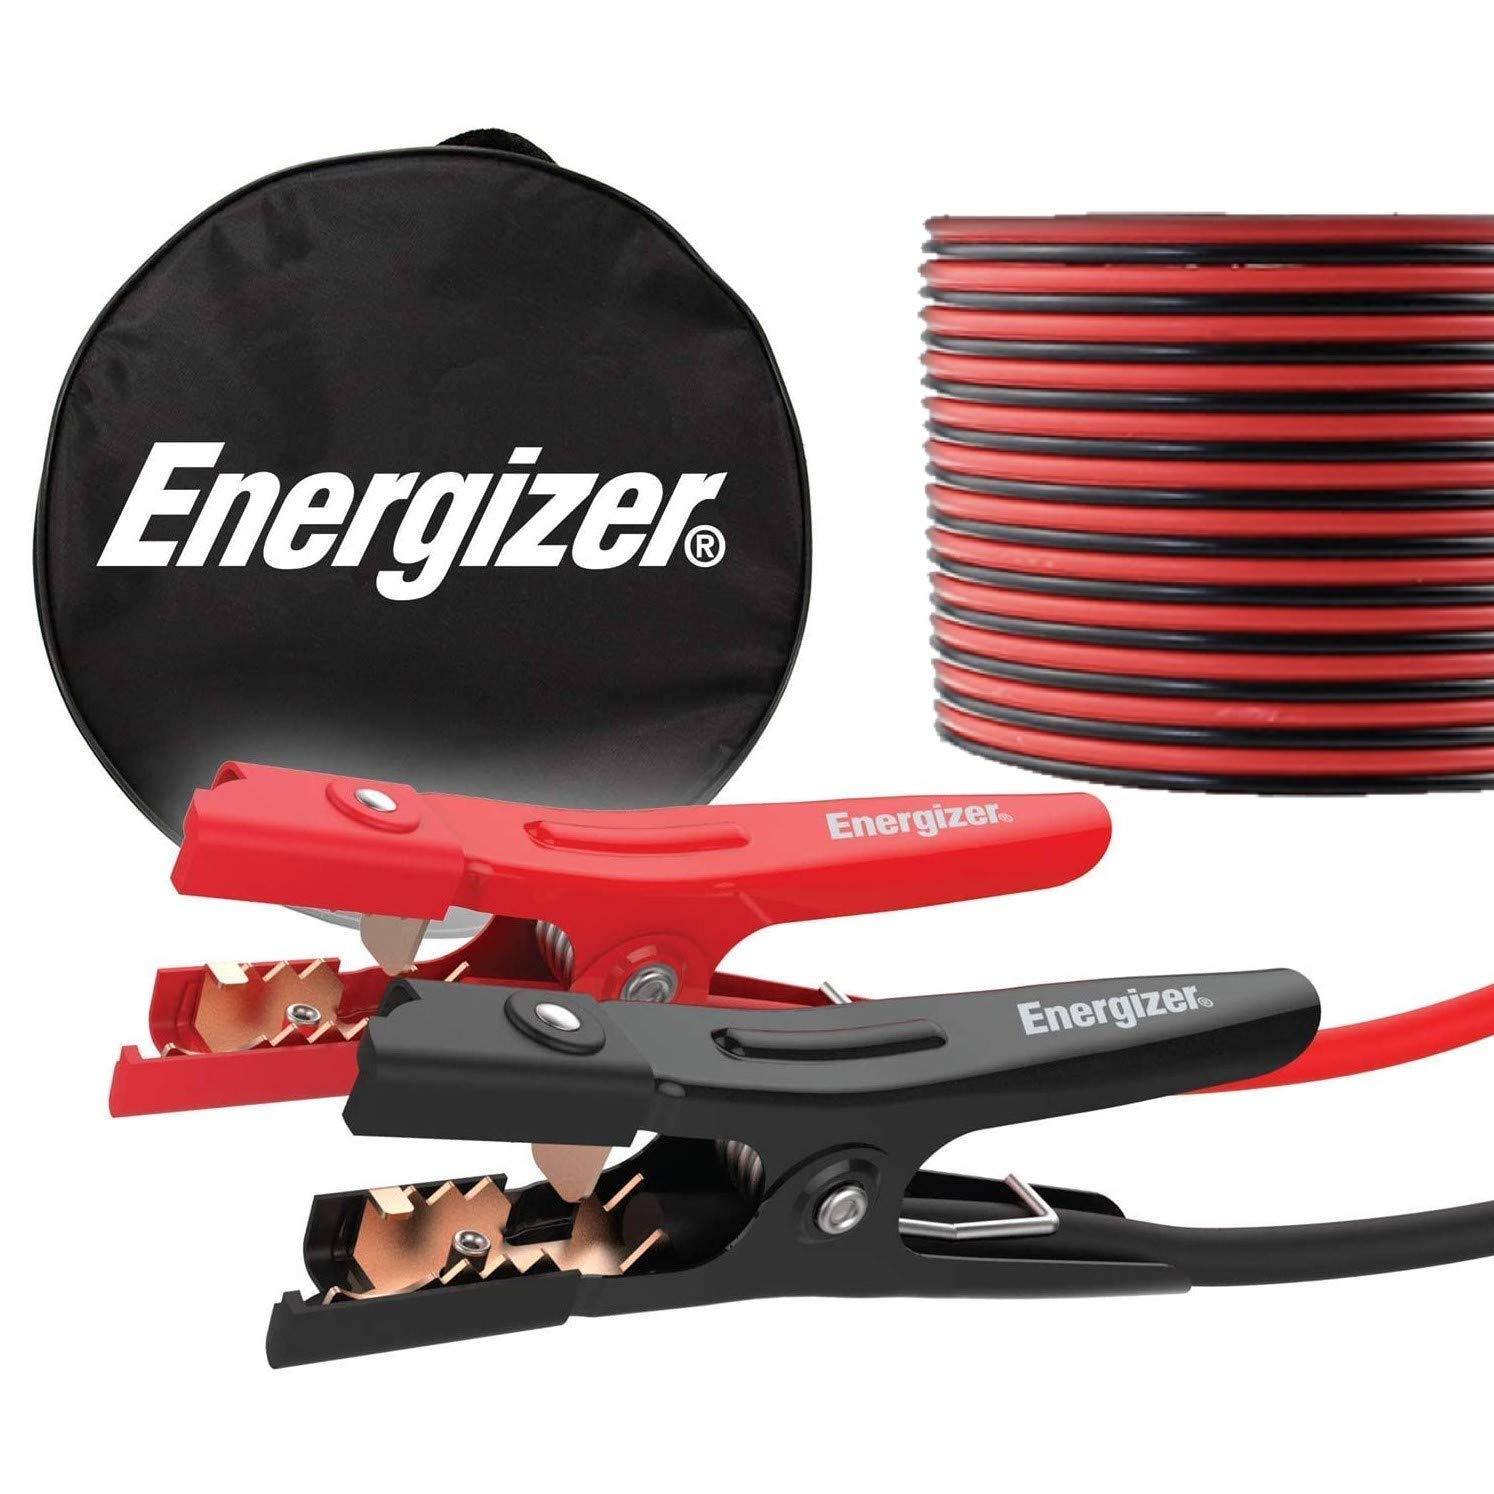 Energizer Jumper Cables for Car Battery, Heavy Duty Automotive Booster Cables for Jump Starting Dead or Weak Batteries with Carrying Bag Included (16-Feet (4-Gauge)